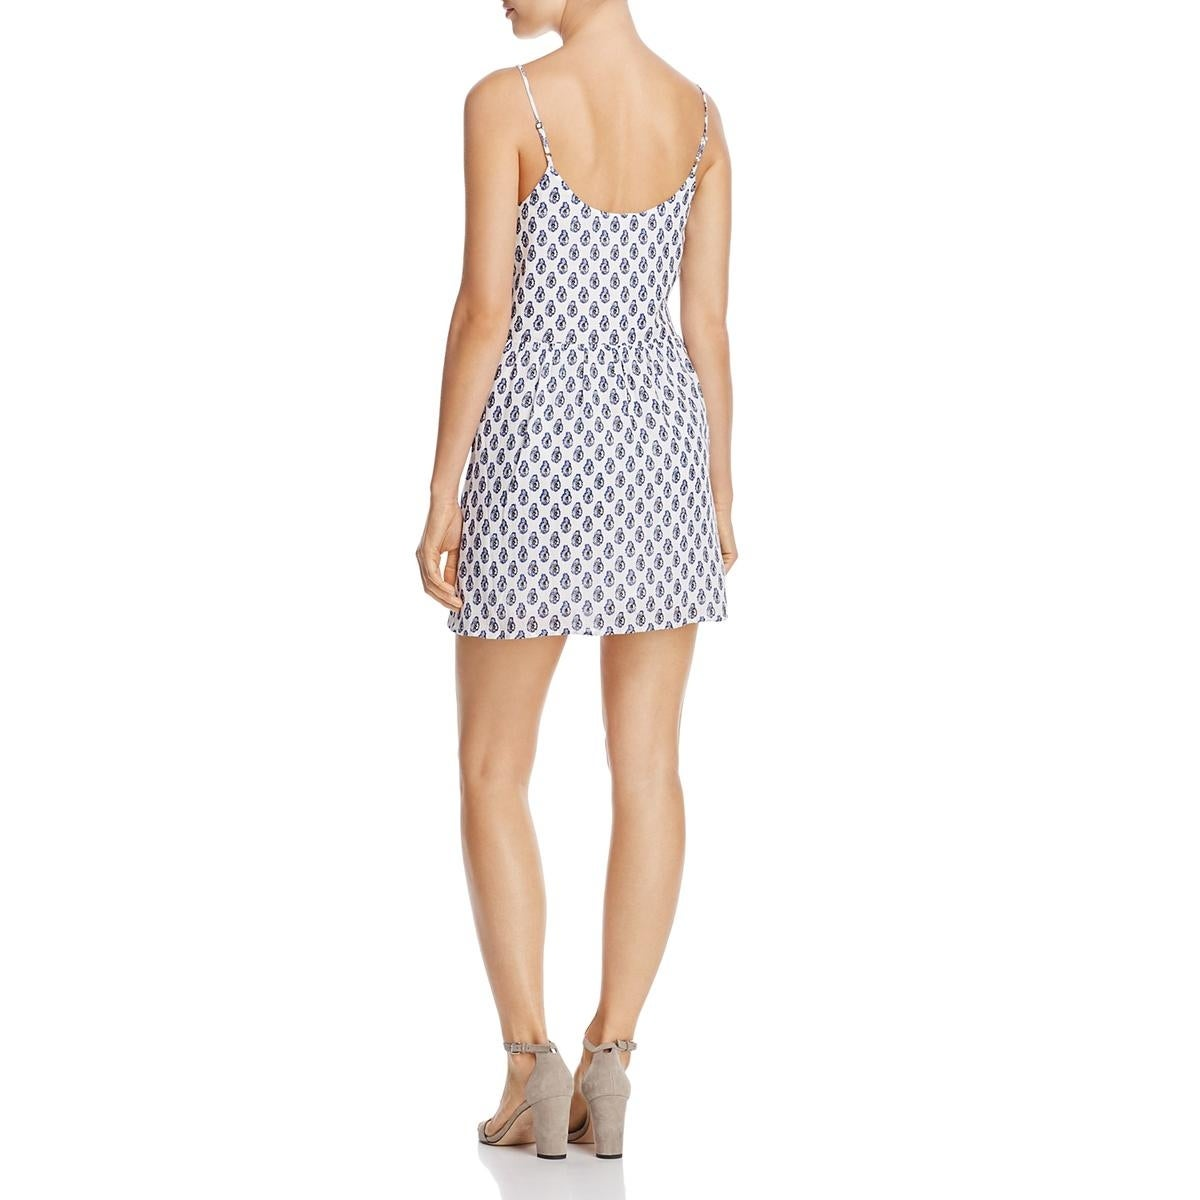 84a74197d625d Soft Joie Womens Vadim Casual Dress Woven Printed - l